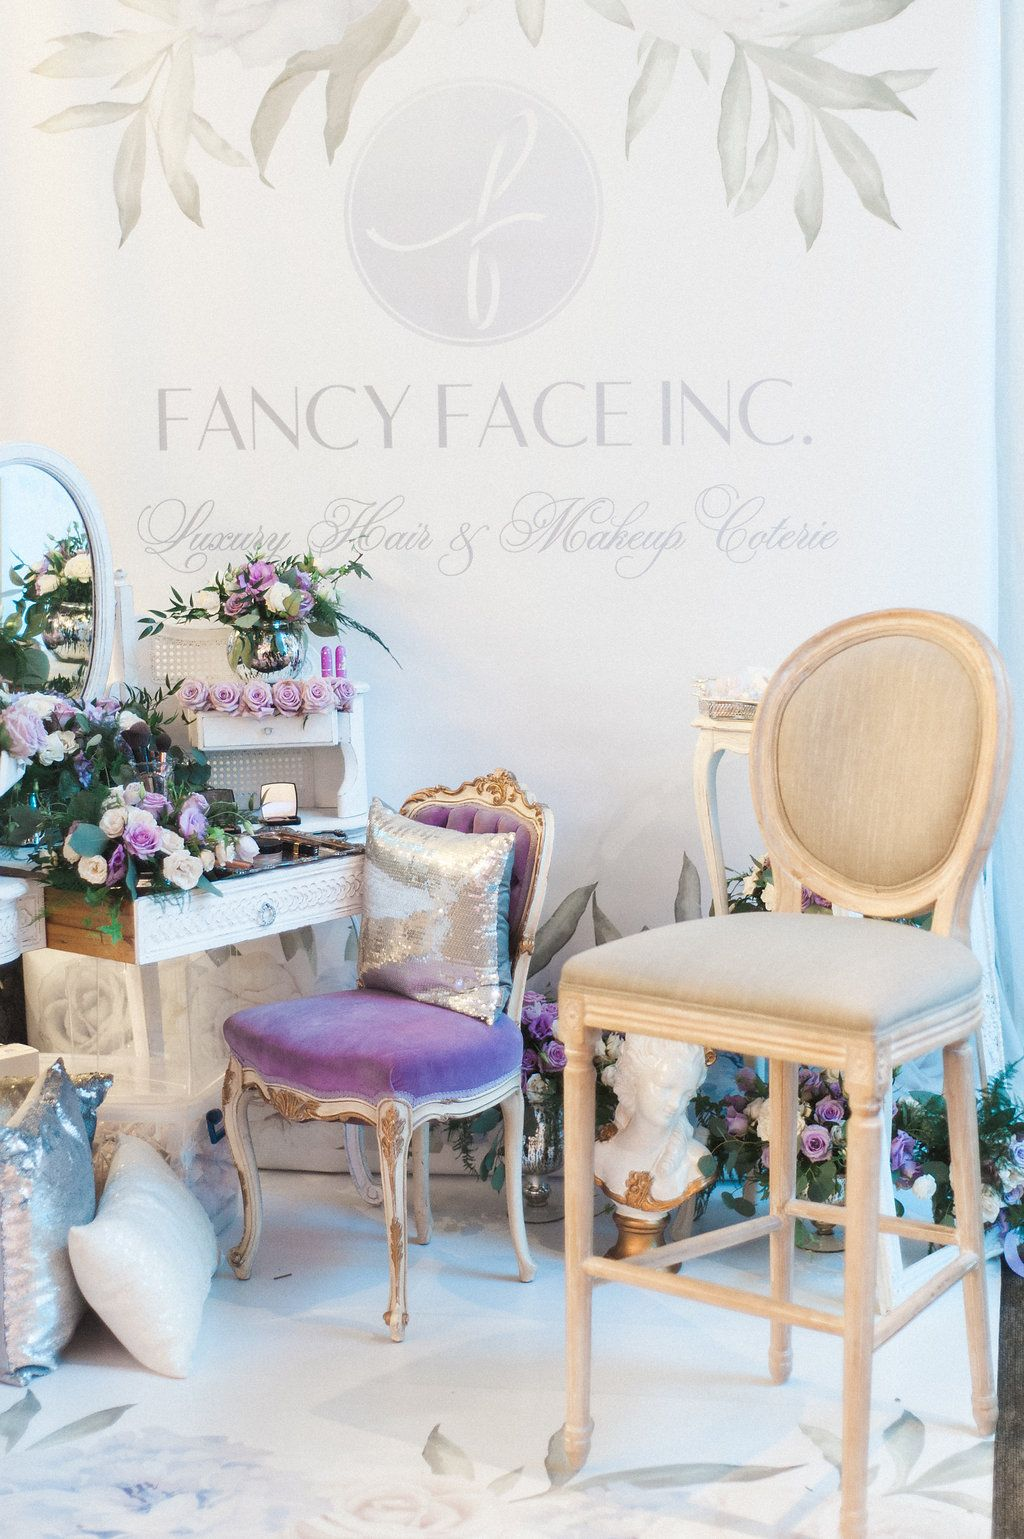 Fancy Face Booth 2016 ----.jpg